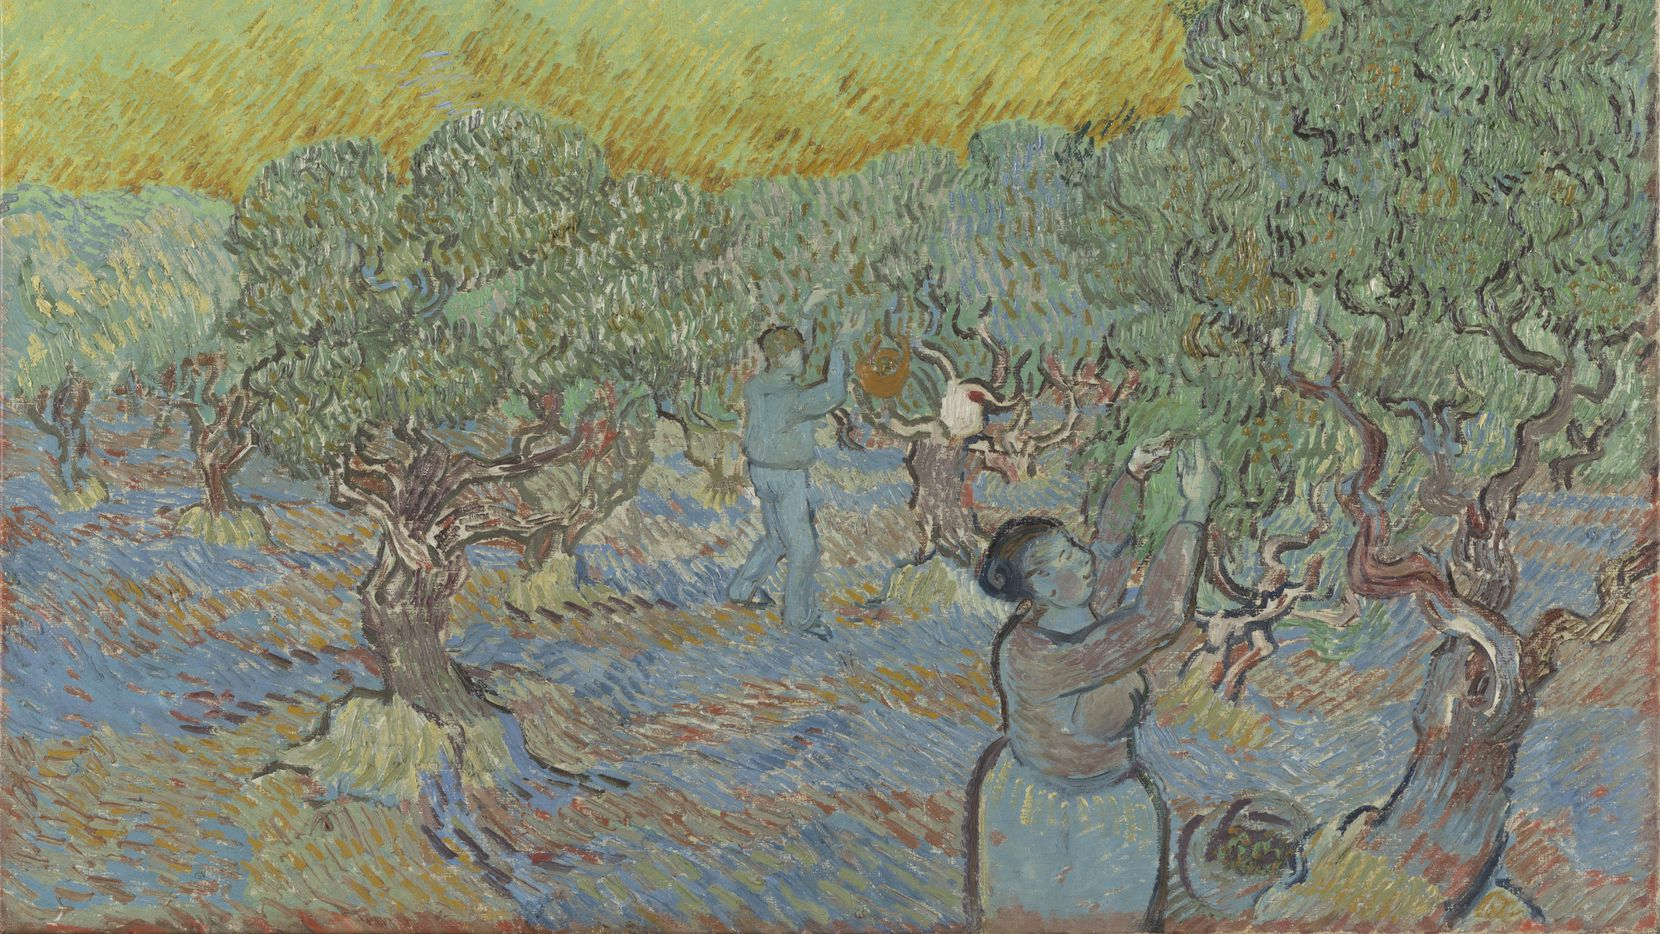 """Vincent van Gogh's 1889 oil-on-canvas work """"Olive Grove with Two Pickers"""" will come to Dallas in the first exhibition to reunite all 15 paintings in the series, which was executed during his stay at the asylum in Saint-Rémy-de-Provence."""